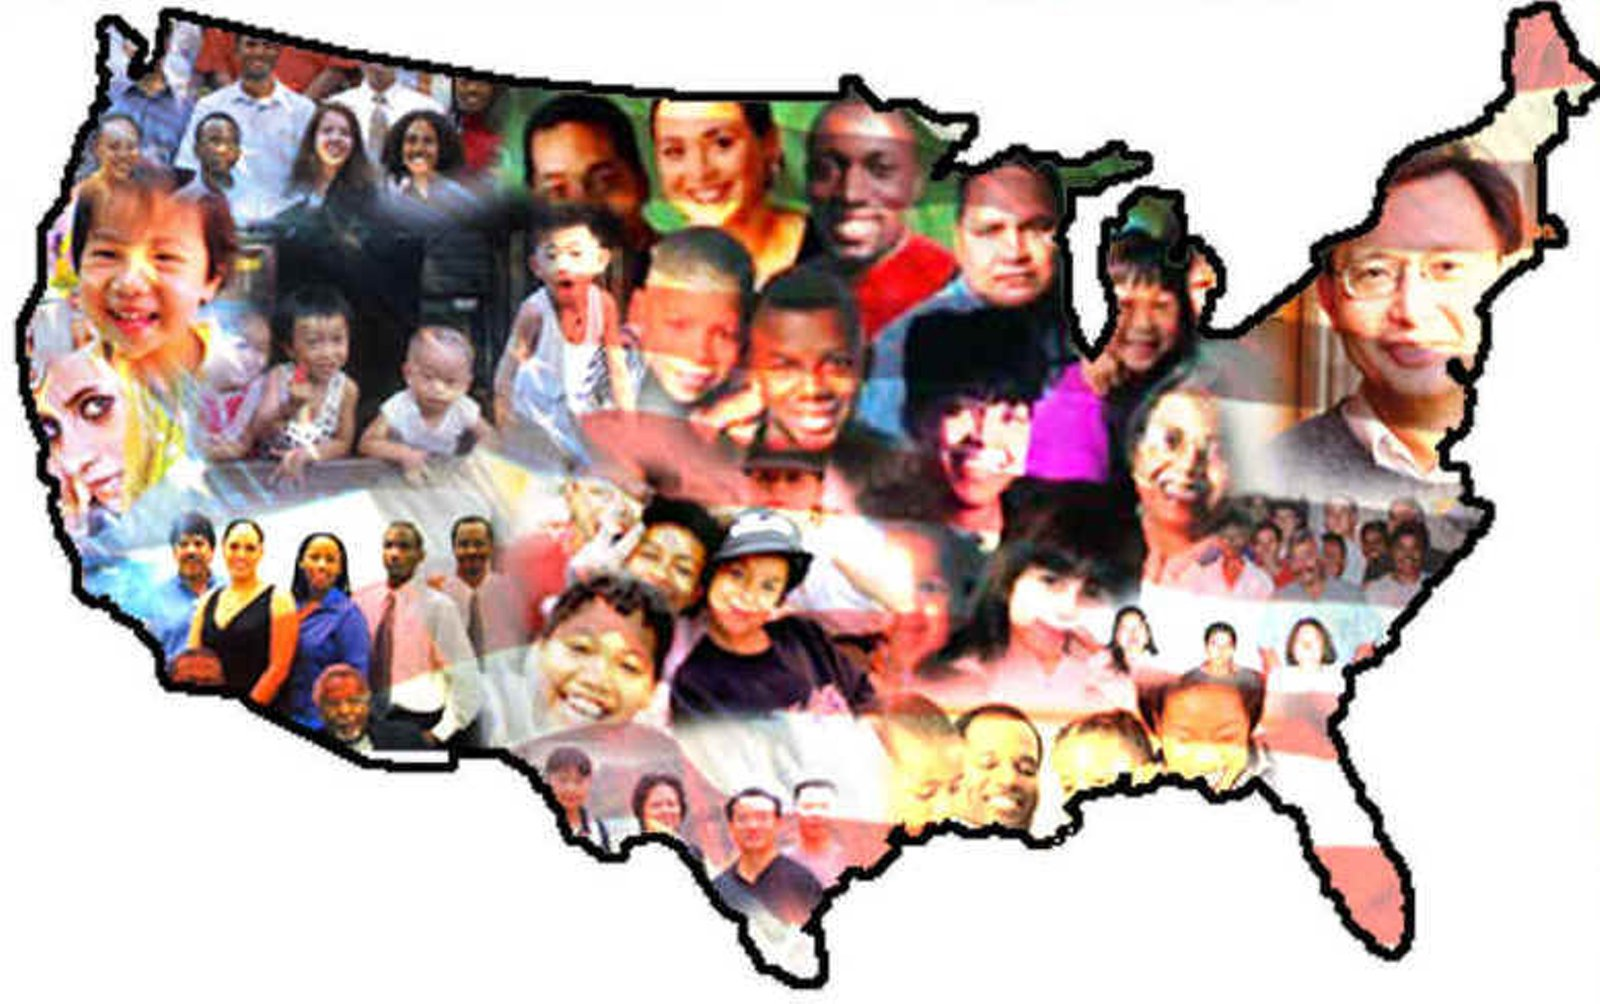 diversity united states essay Jul 16, 2 12 this fall, the united states supreme court will consider the case of for many years, i have seen the benefits of having a diverse student body.